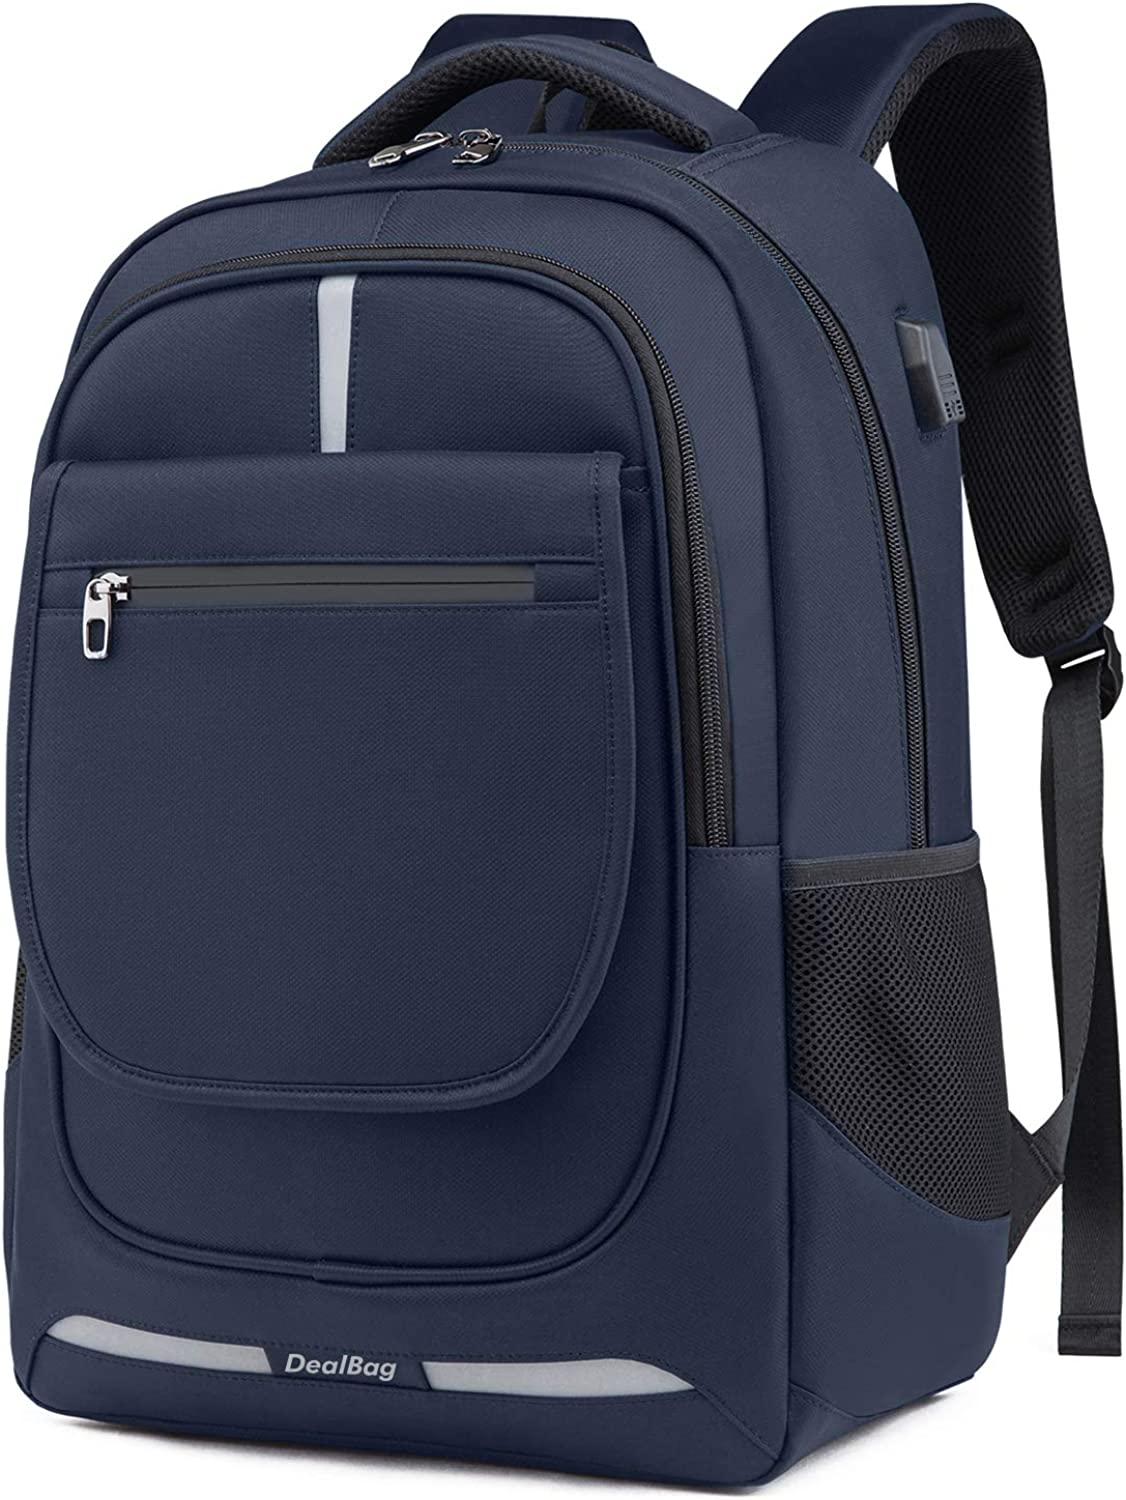 Laptop Computer Backpack,Business Travel Bag Fit 17 Inch Laptops with USB Charging Port (Purplish Blue)